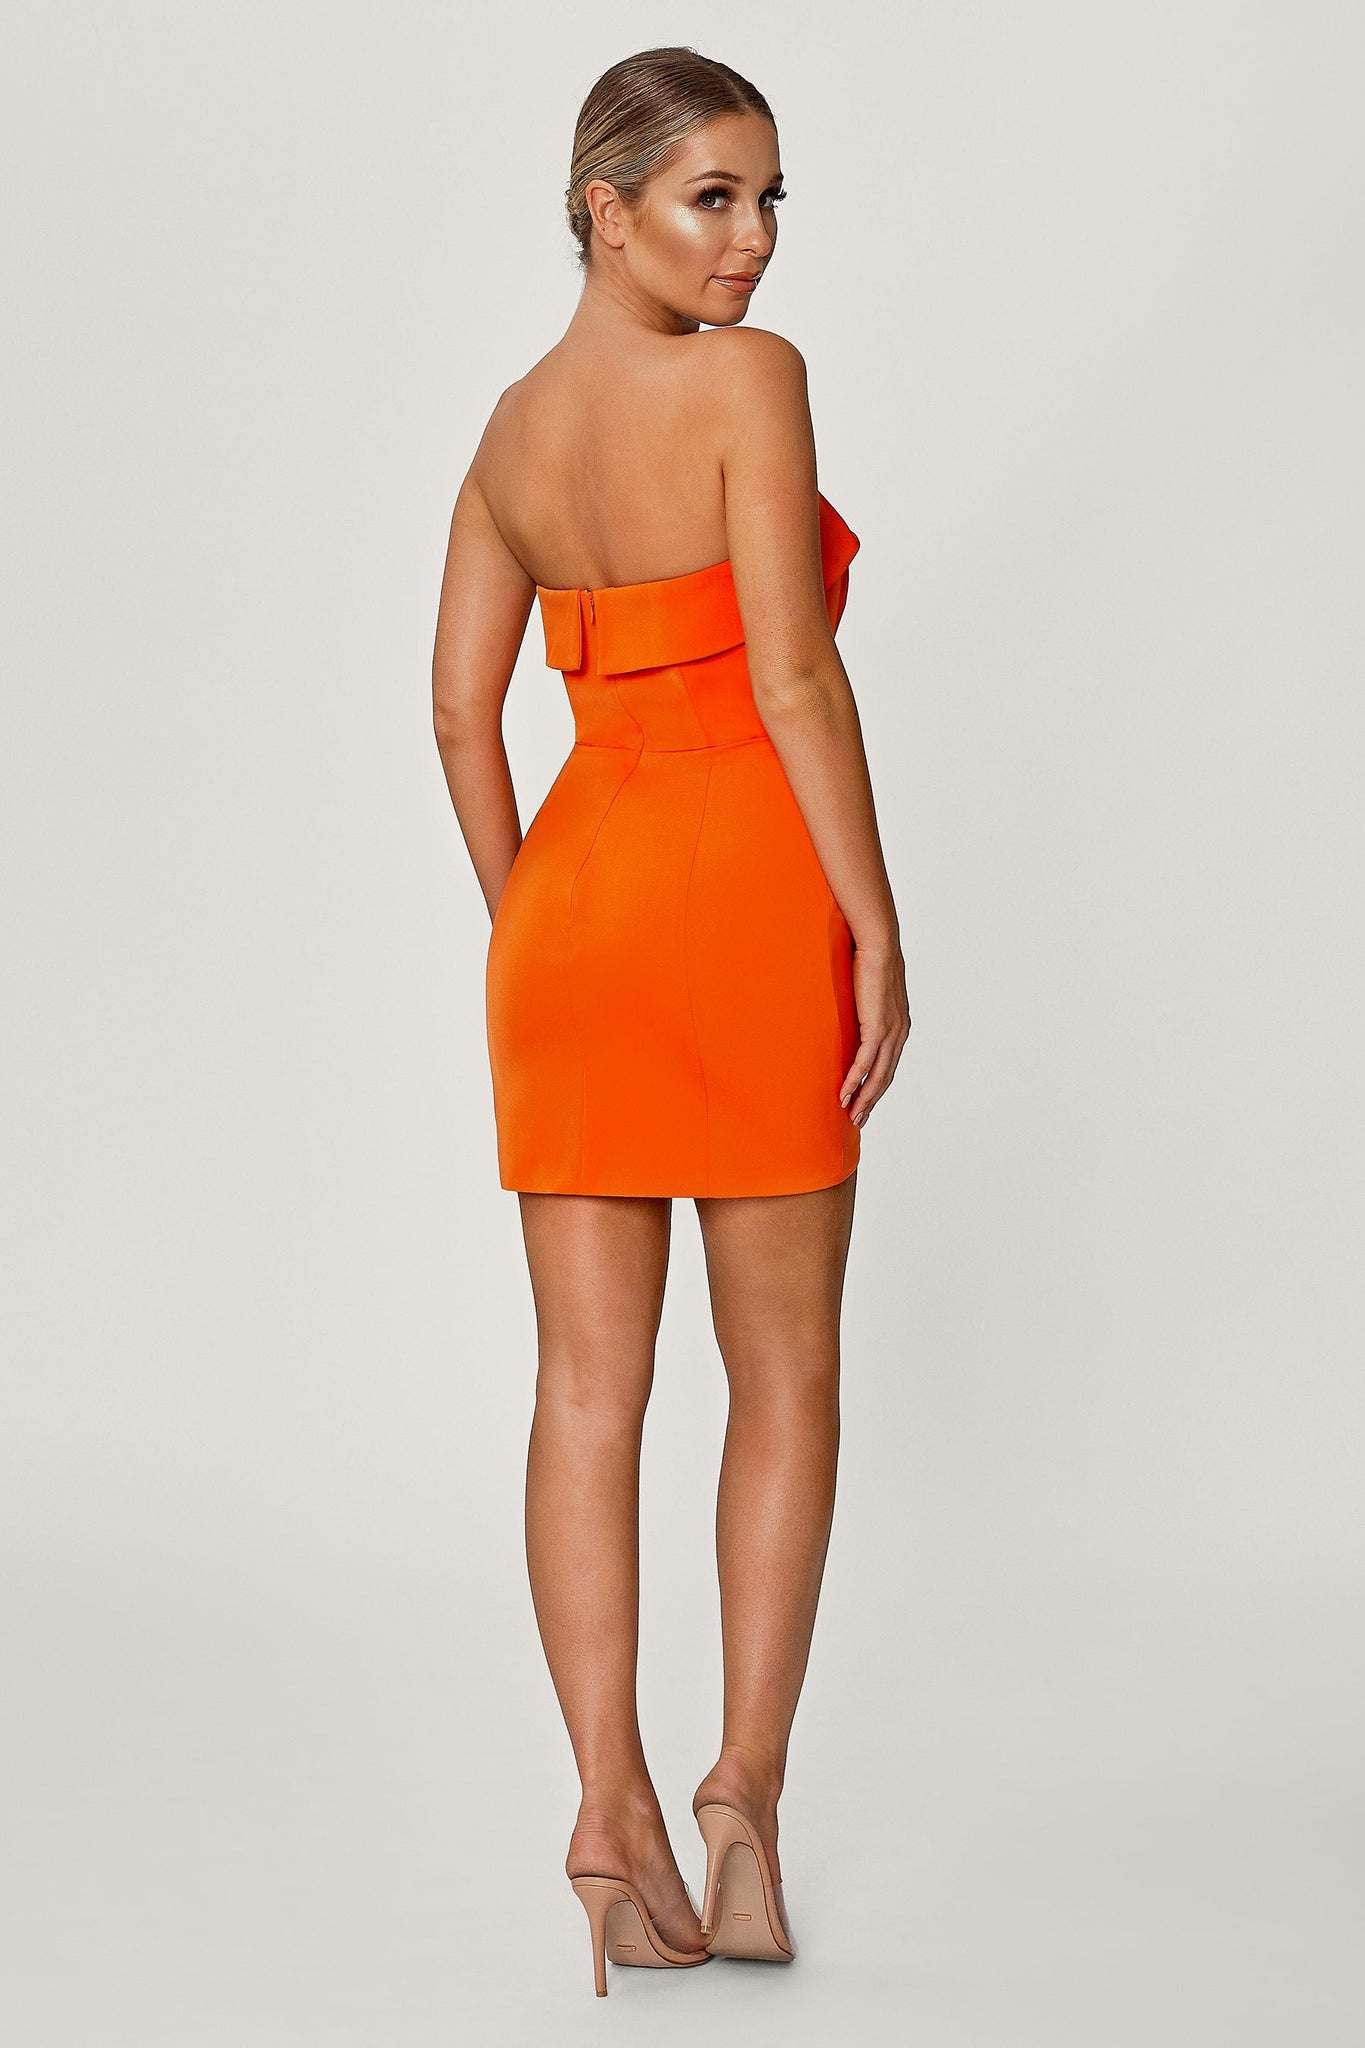 Macie Strapless Mini Dress - Orange - MESHKI